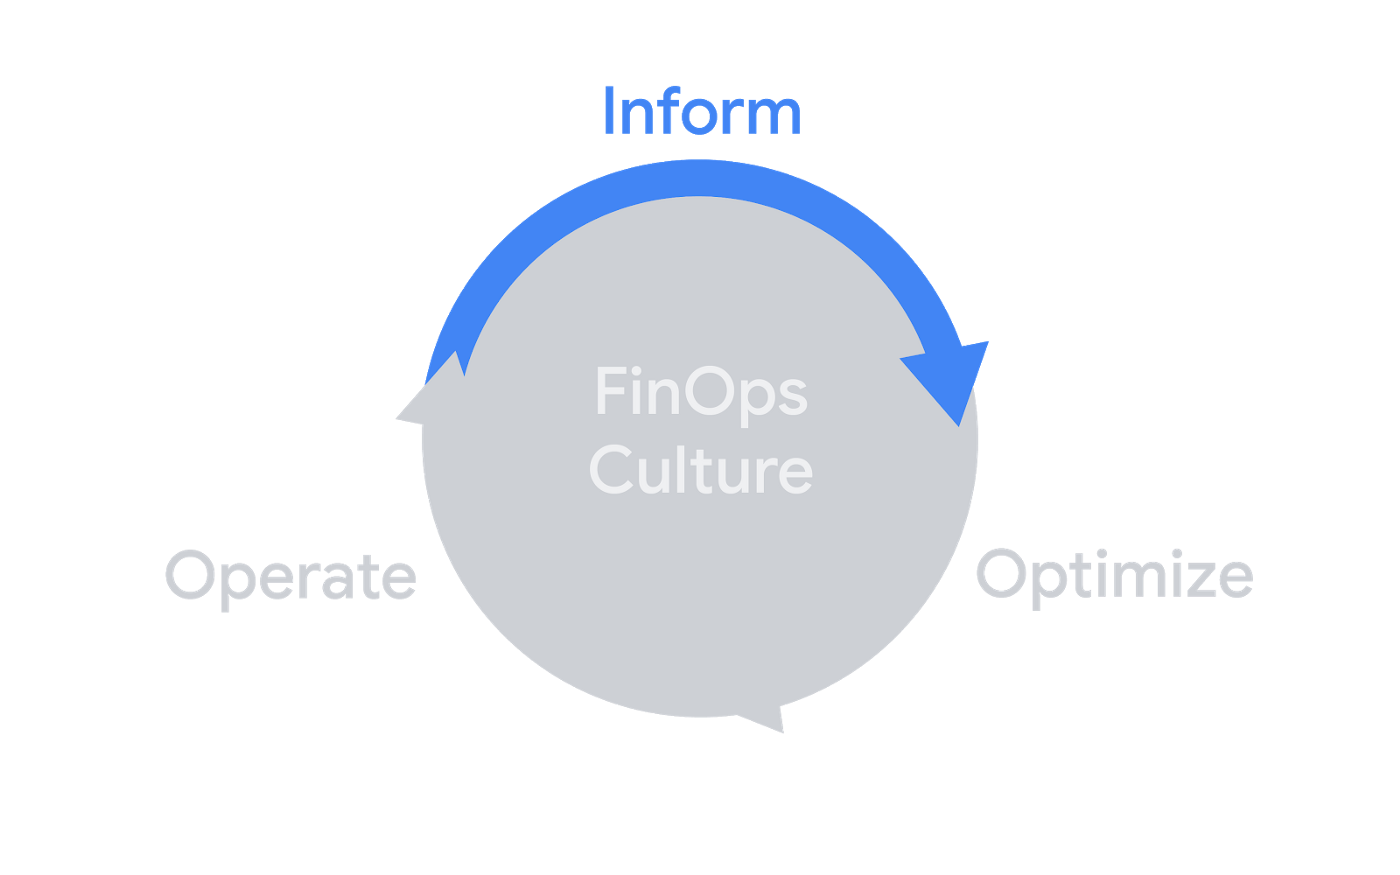 FinOps lifecycle: Inform, Optimize, Operate surrounding the Culture